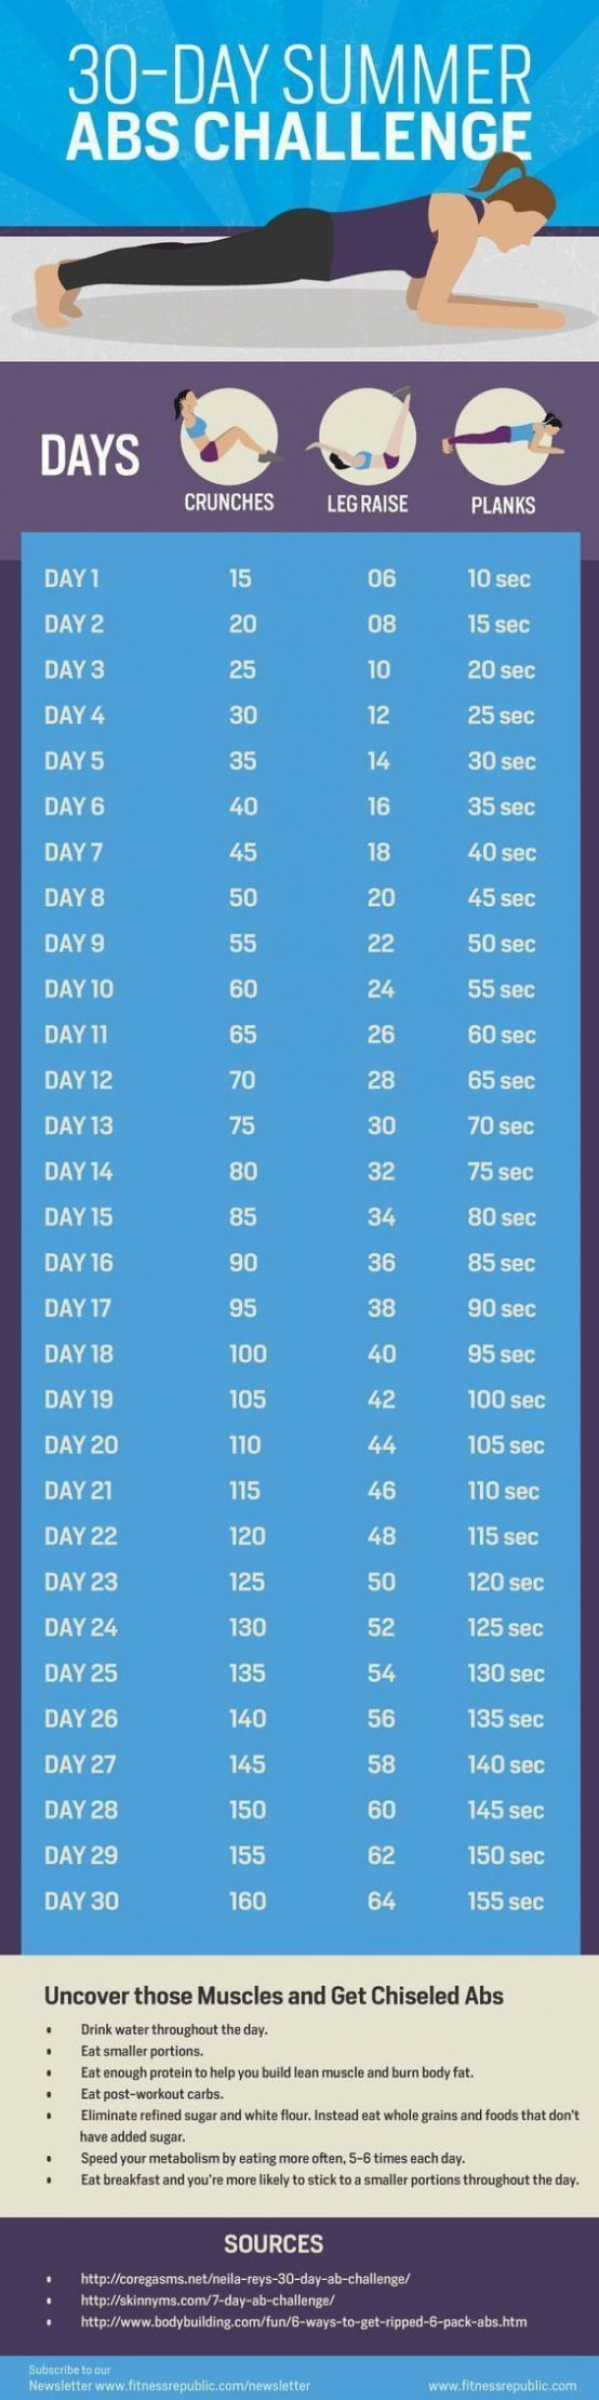 30-Day Summer Abs Challenge #fitness #abs #workout #looseweight #looseweight